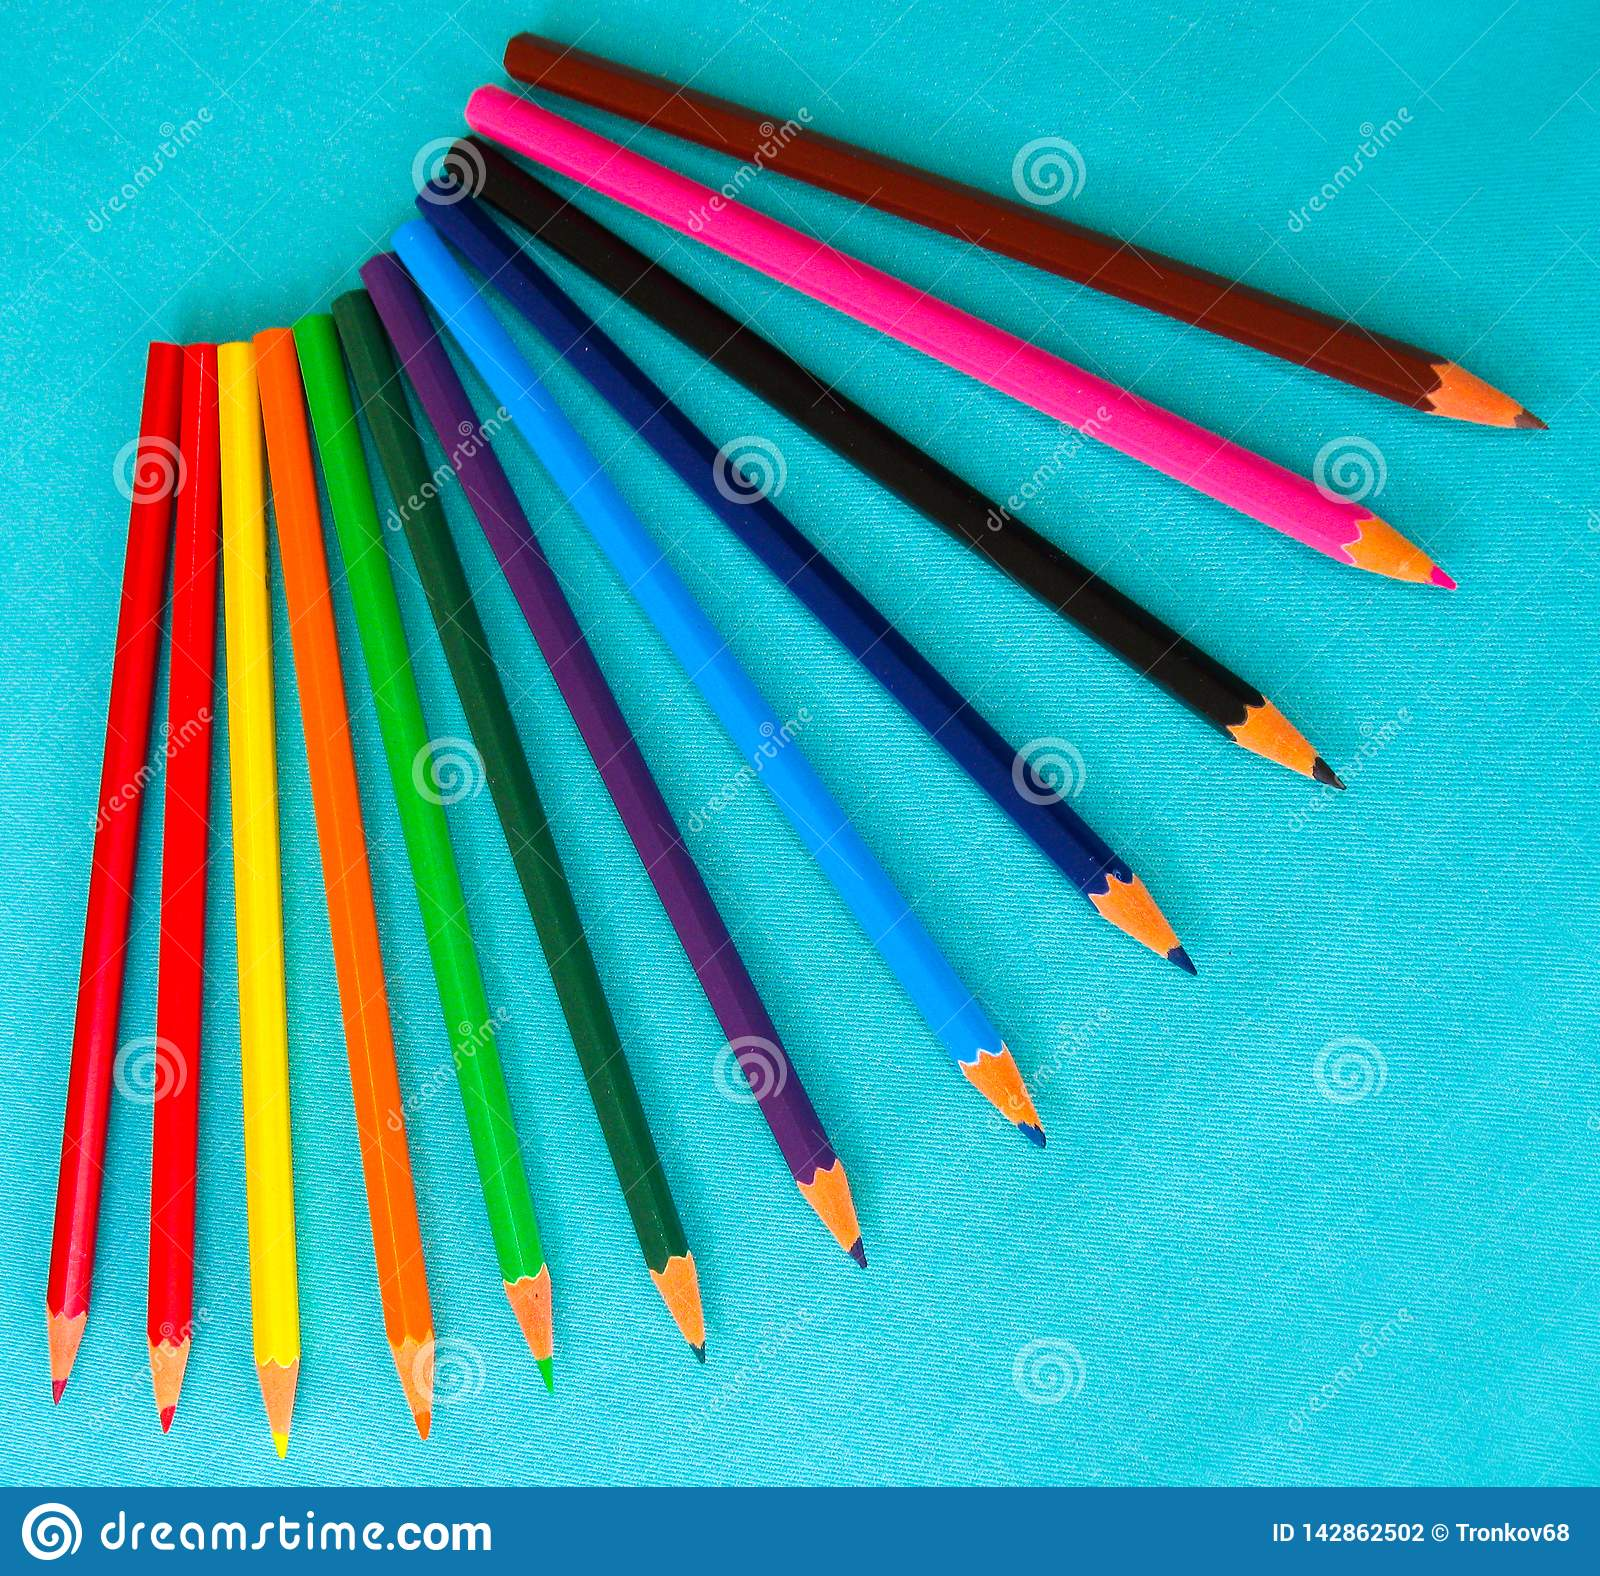 A set of children`s, colored pencils on a turquoise background.